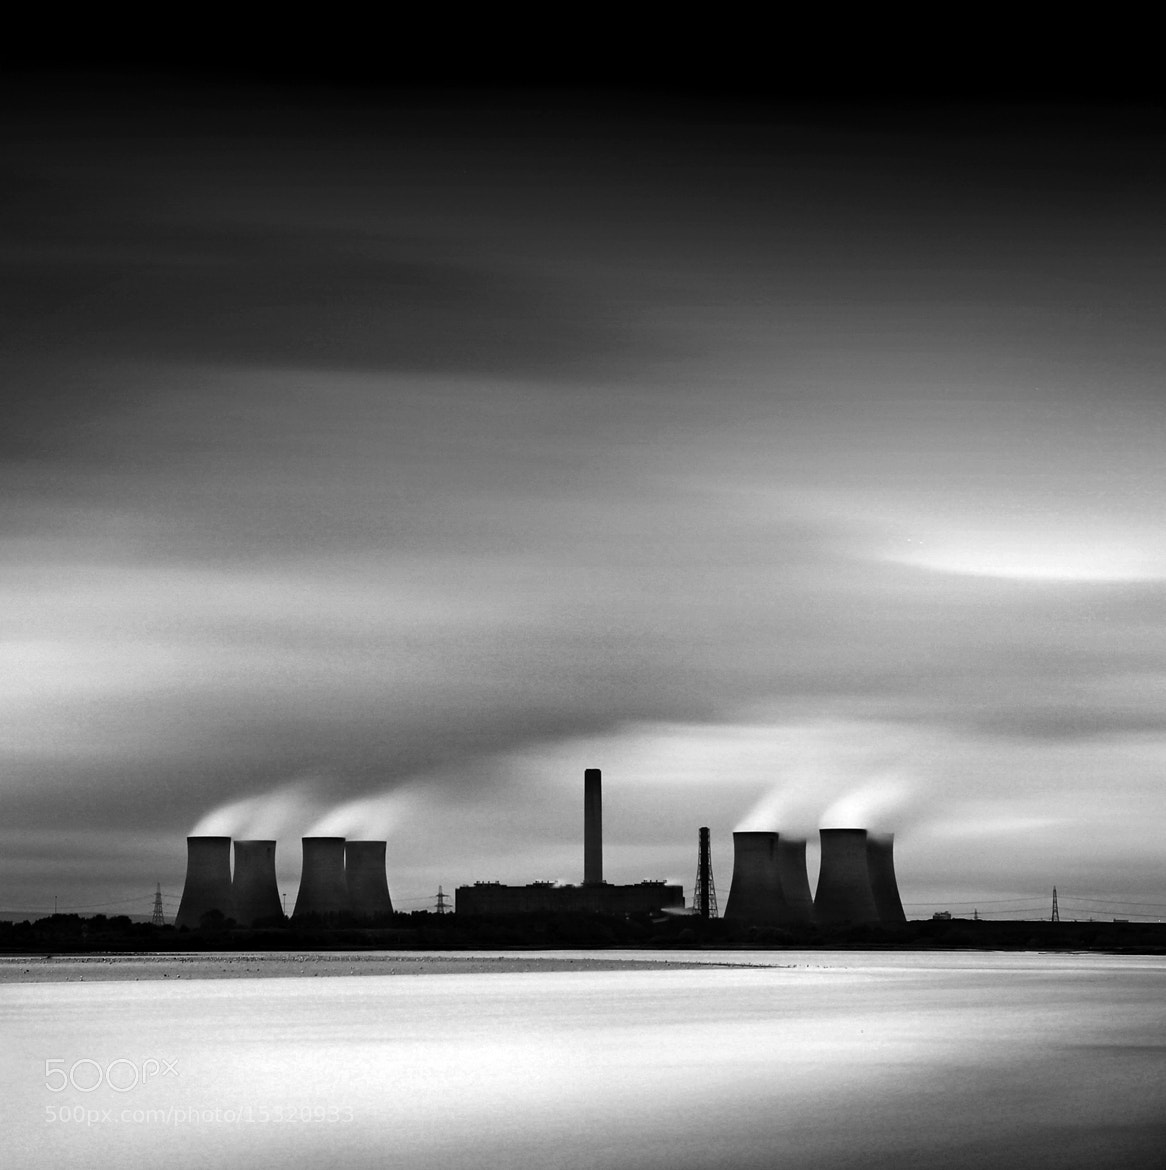 Photograph Fiddlers Ferry Power Station by Charlie Pragnell on 500px